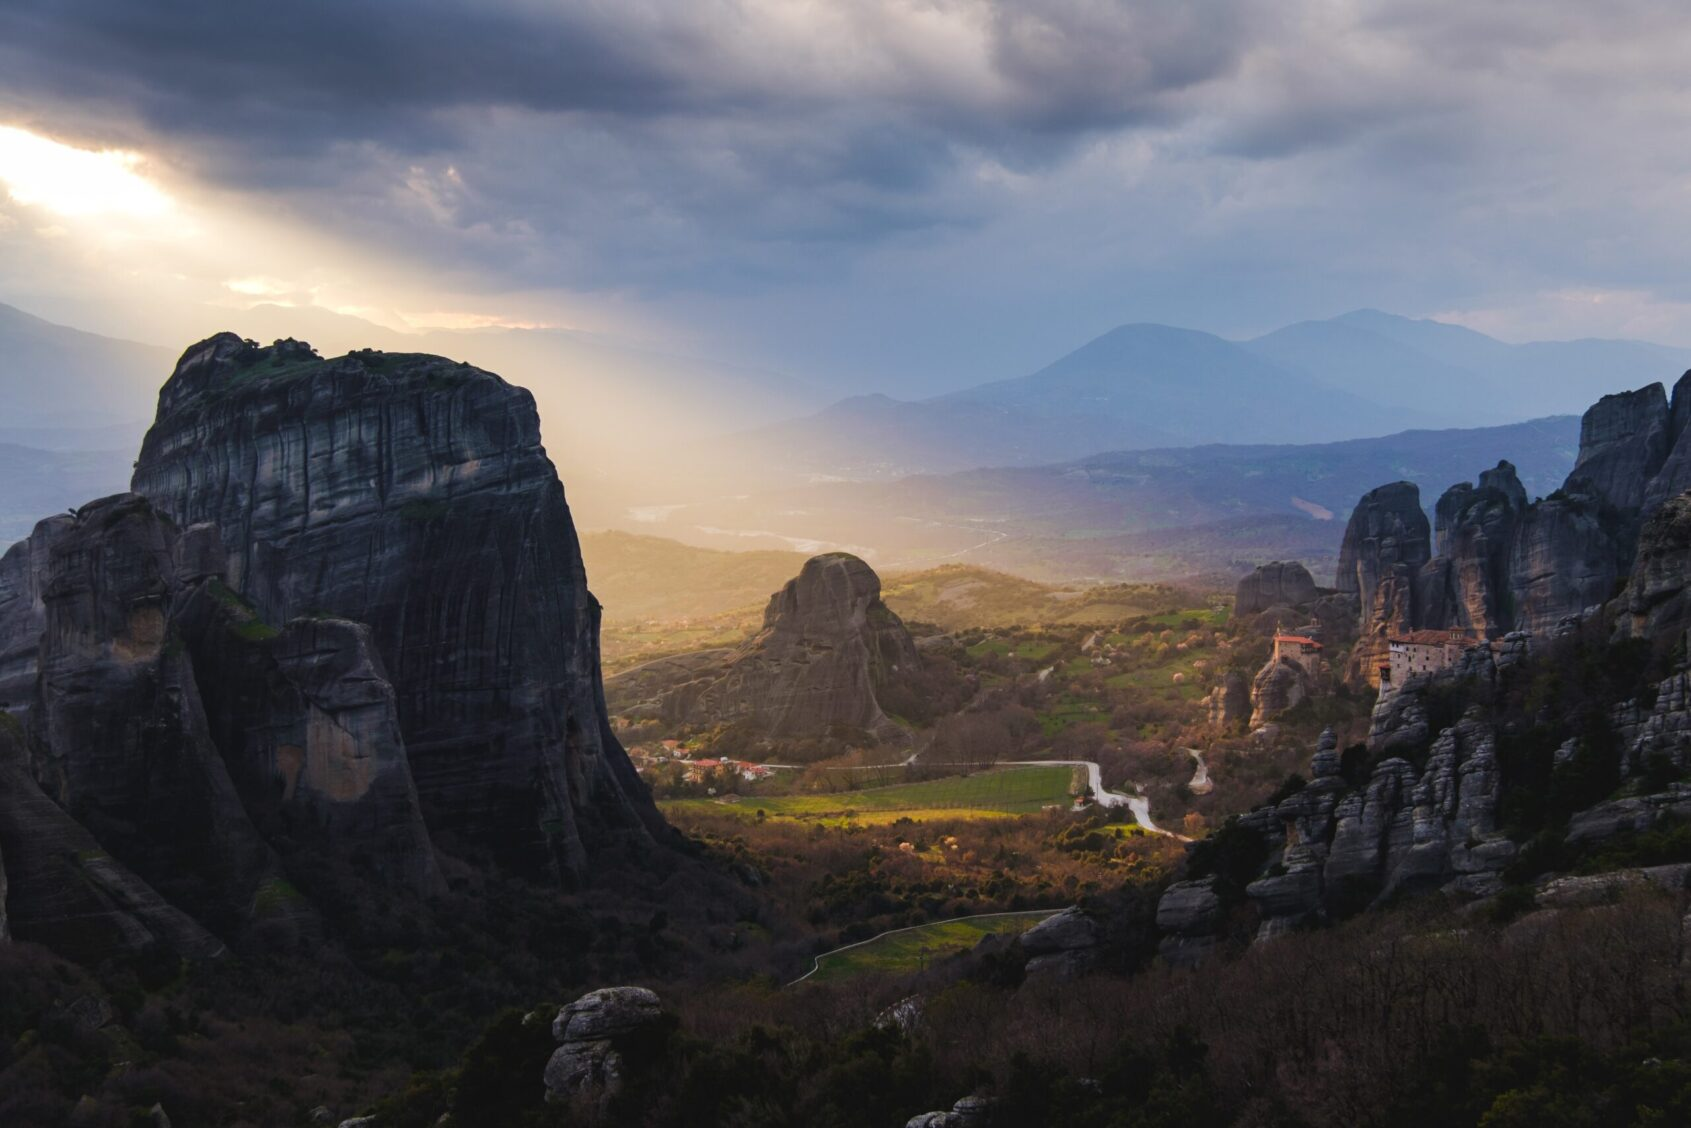 meteora greece, Hikes for women